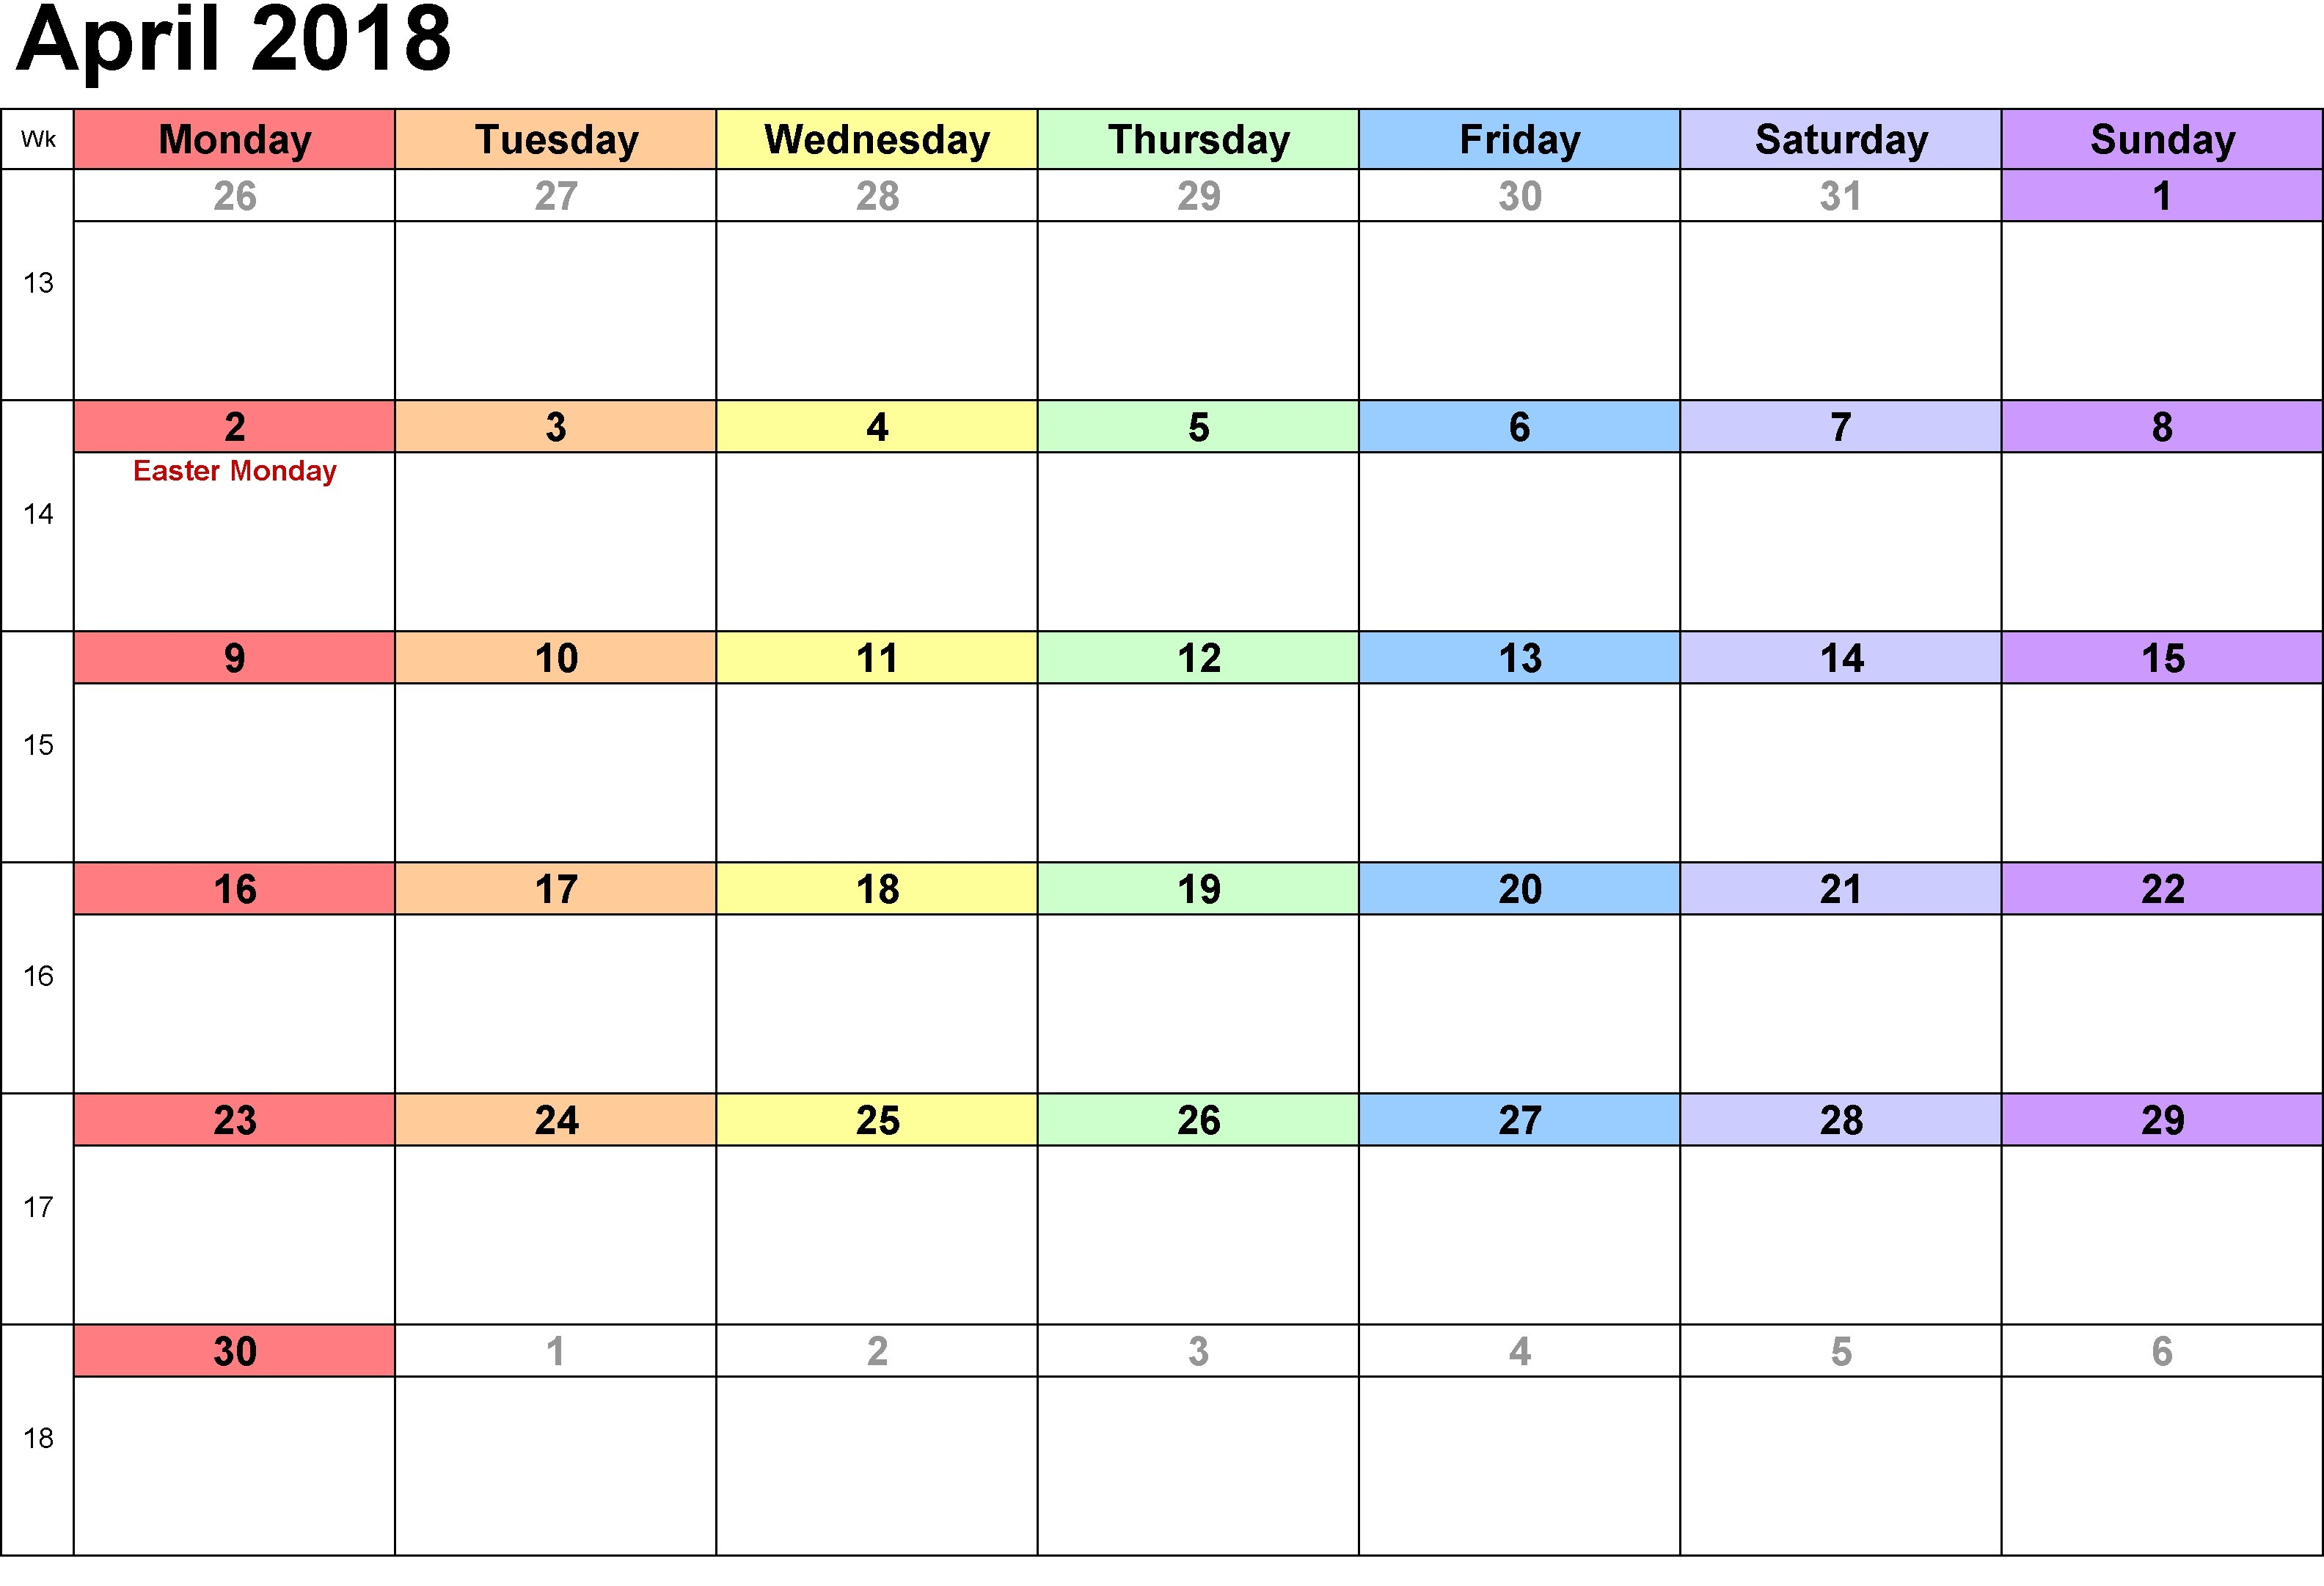 January 2019 Calendar Uae April 2018 Printable Calendar